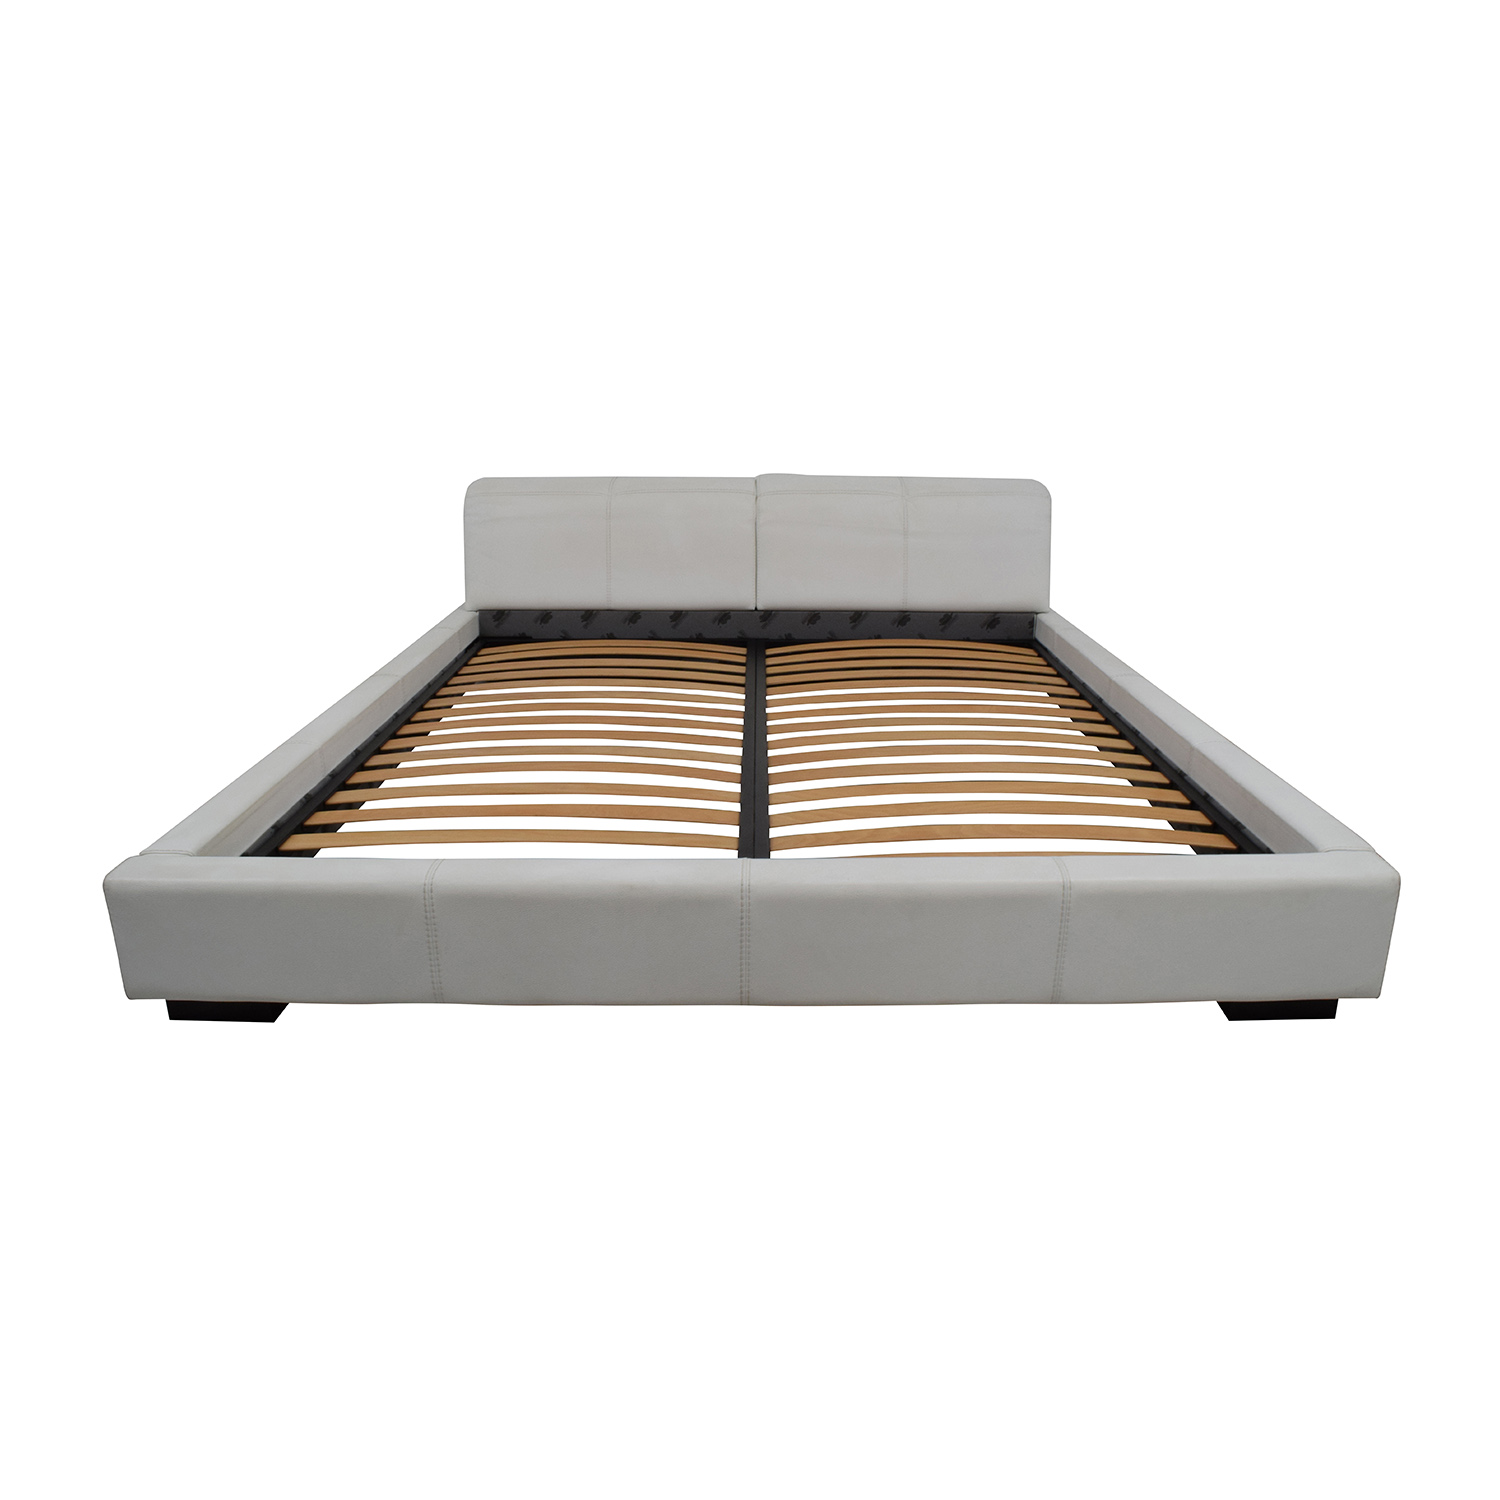 Paramount Paramount Gamma Arredamenti Leather Platform King Bed for sale